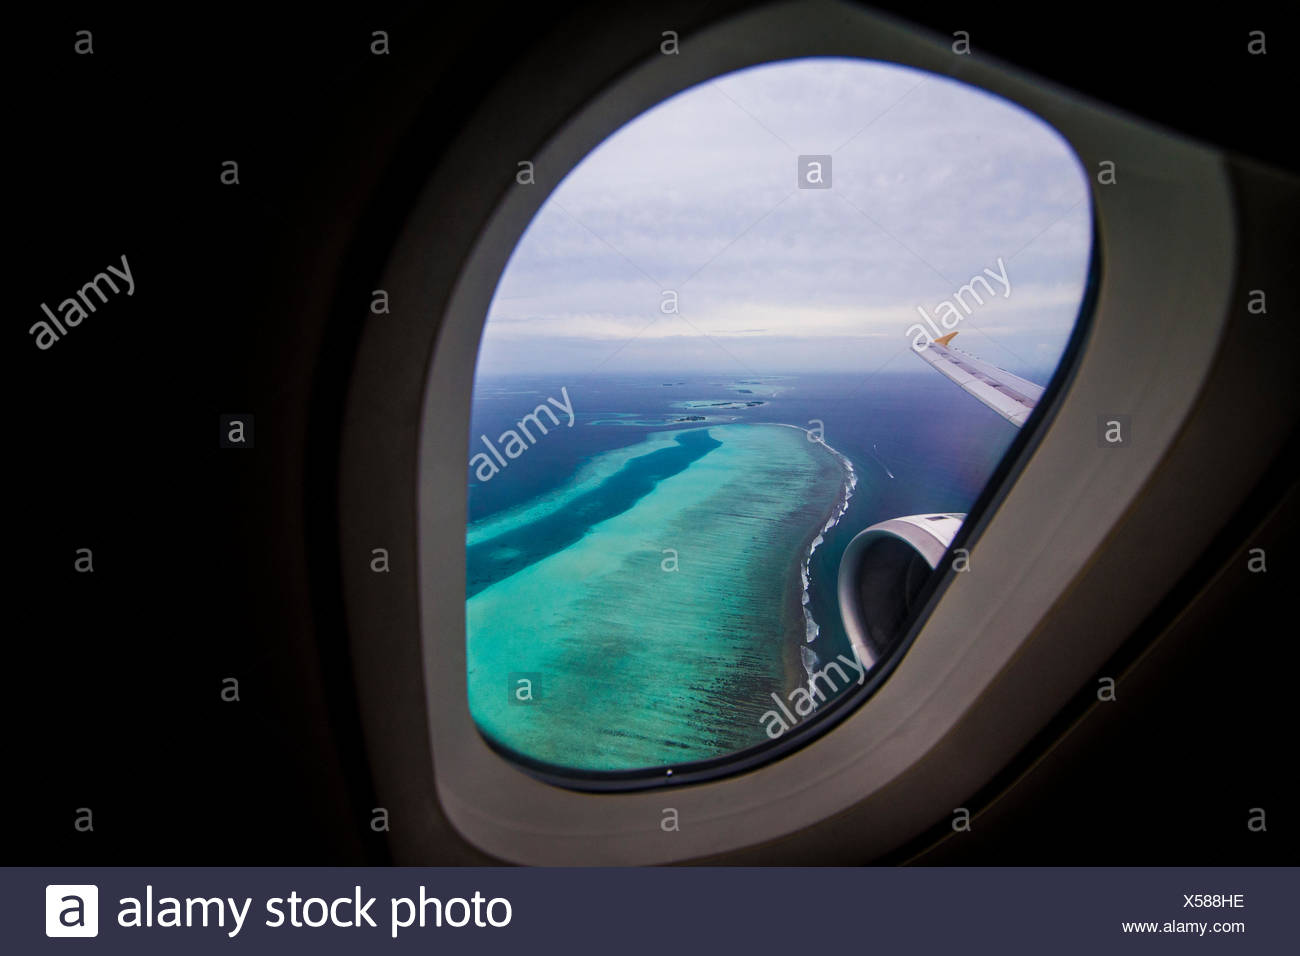 Maldives, Tropical islands seen from plane window - Stock Image